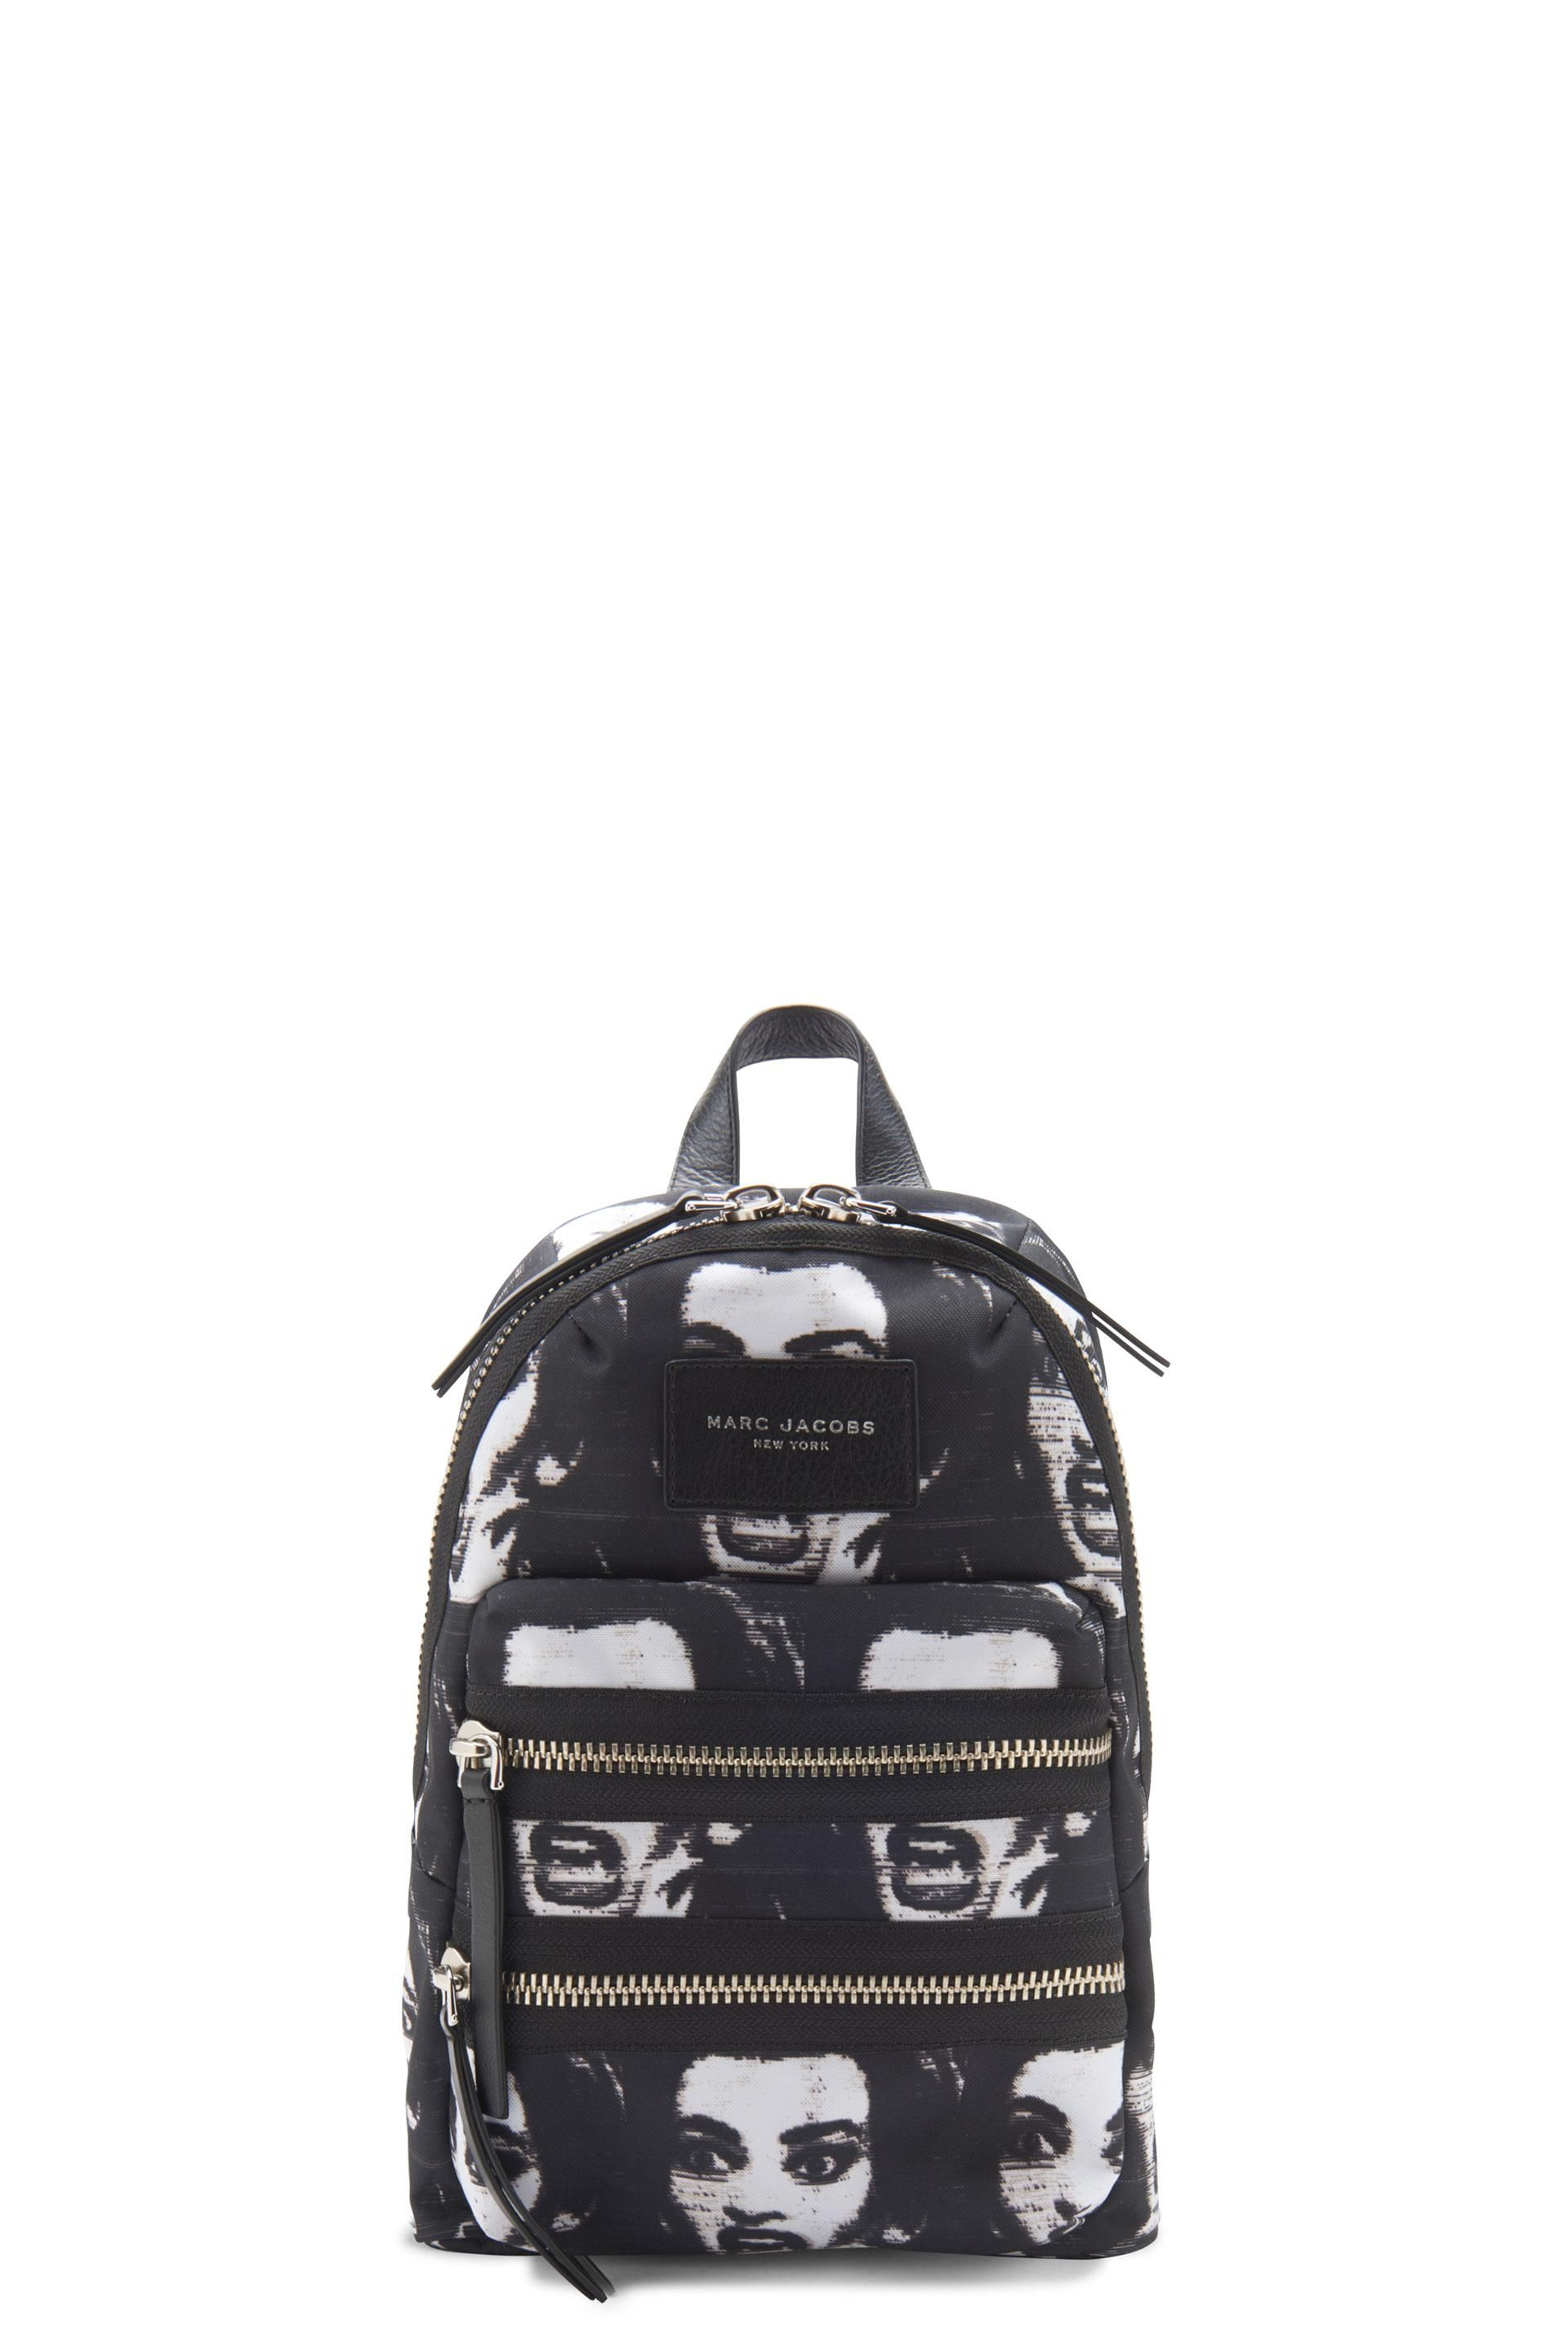 The Marc Jacobs Printed Biker Mini Backpack is made from lightweight and durable polyester and features an exclusive, allover print inspired by American cinema. The bag features a double zip around entry, two exterior zip pockets and two adjustable shoulder straps. 100% Polyester